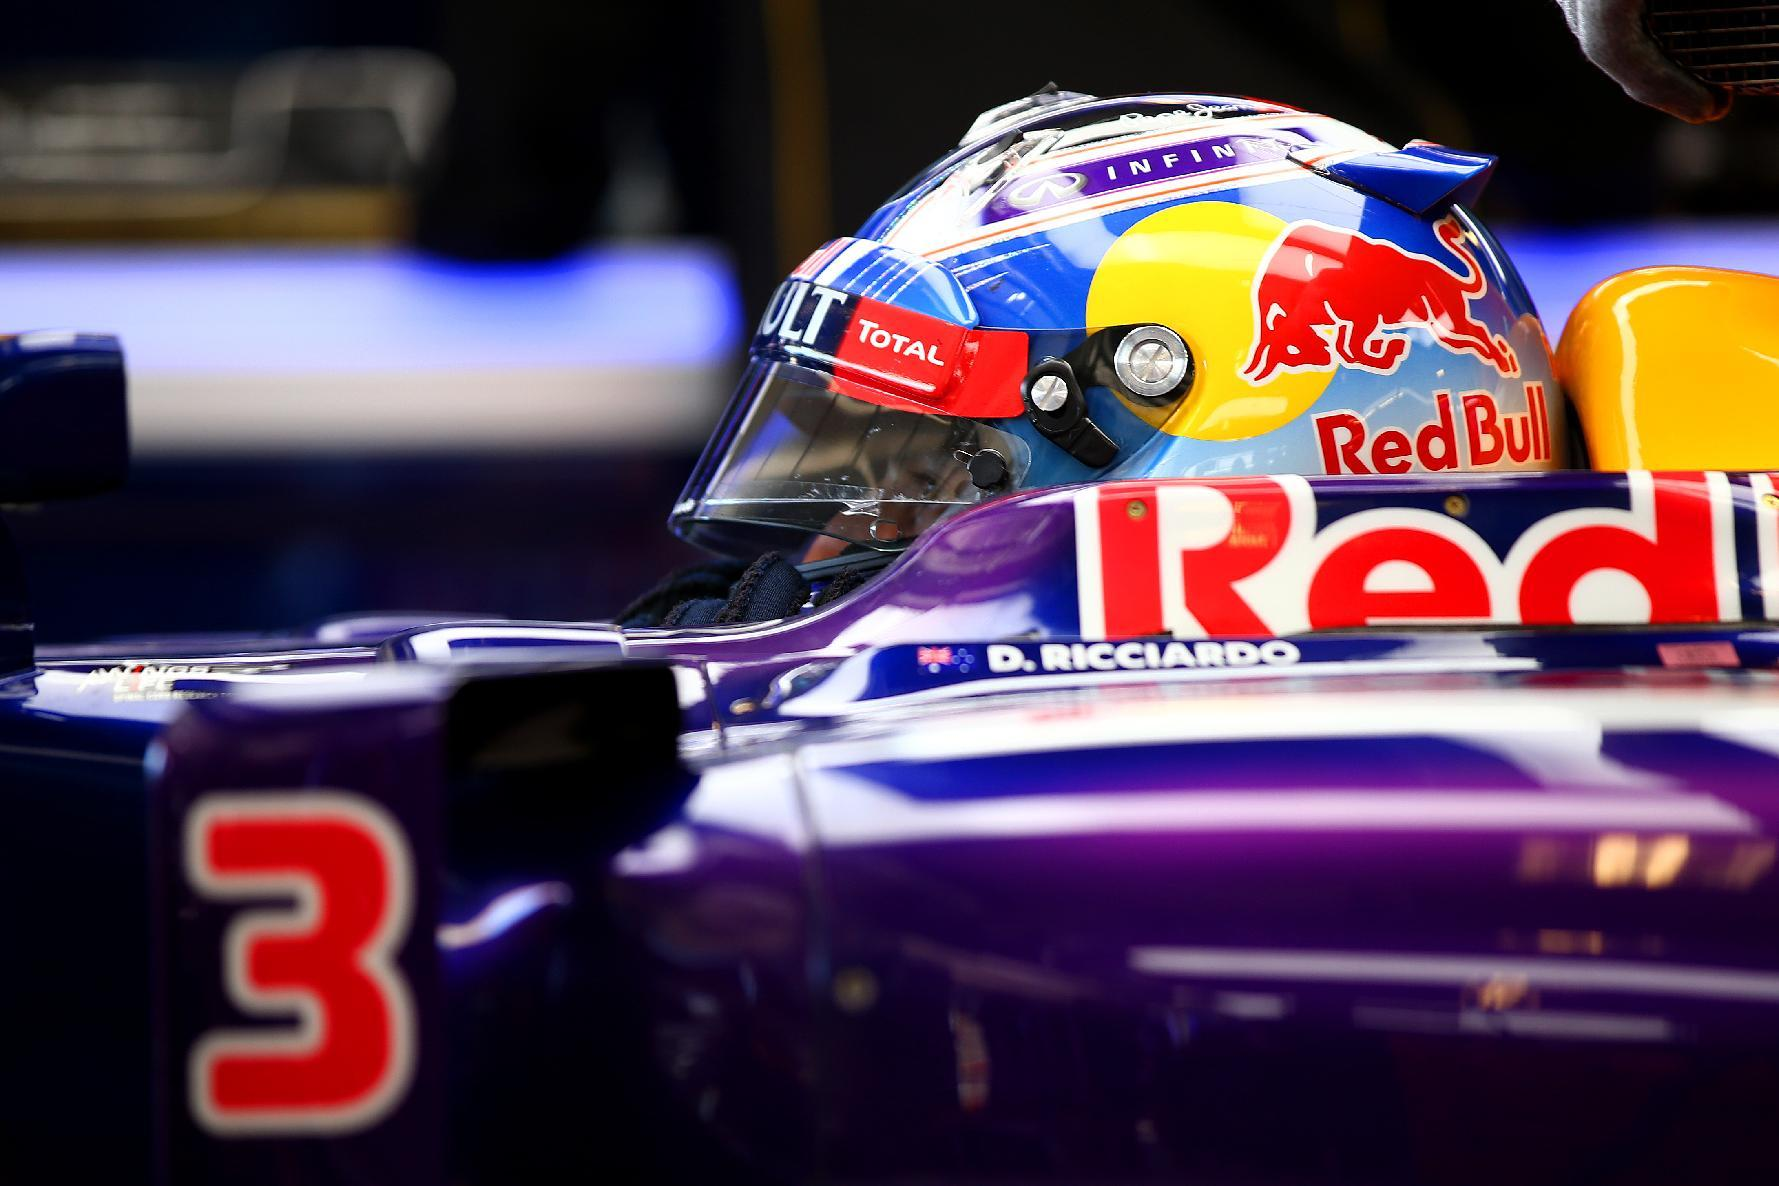 Red Bull launch new F1 car in pursuit of Mercedes